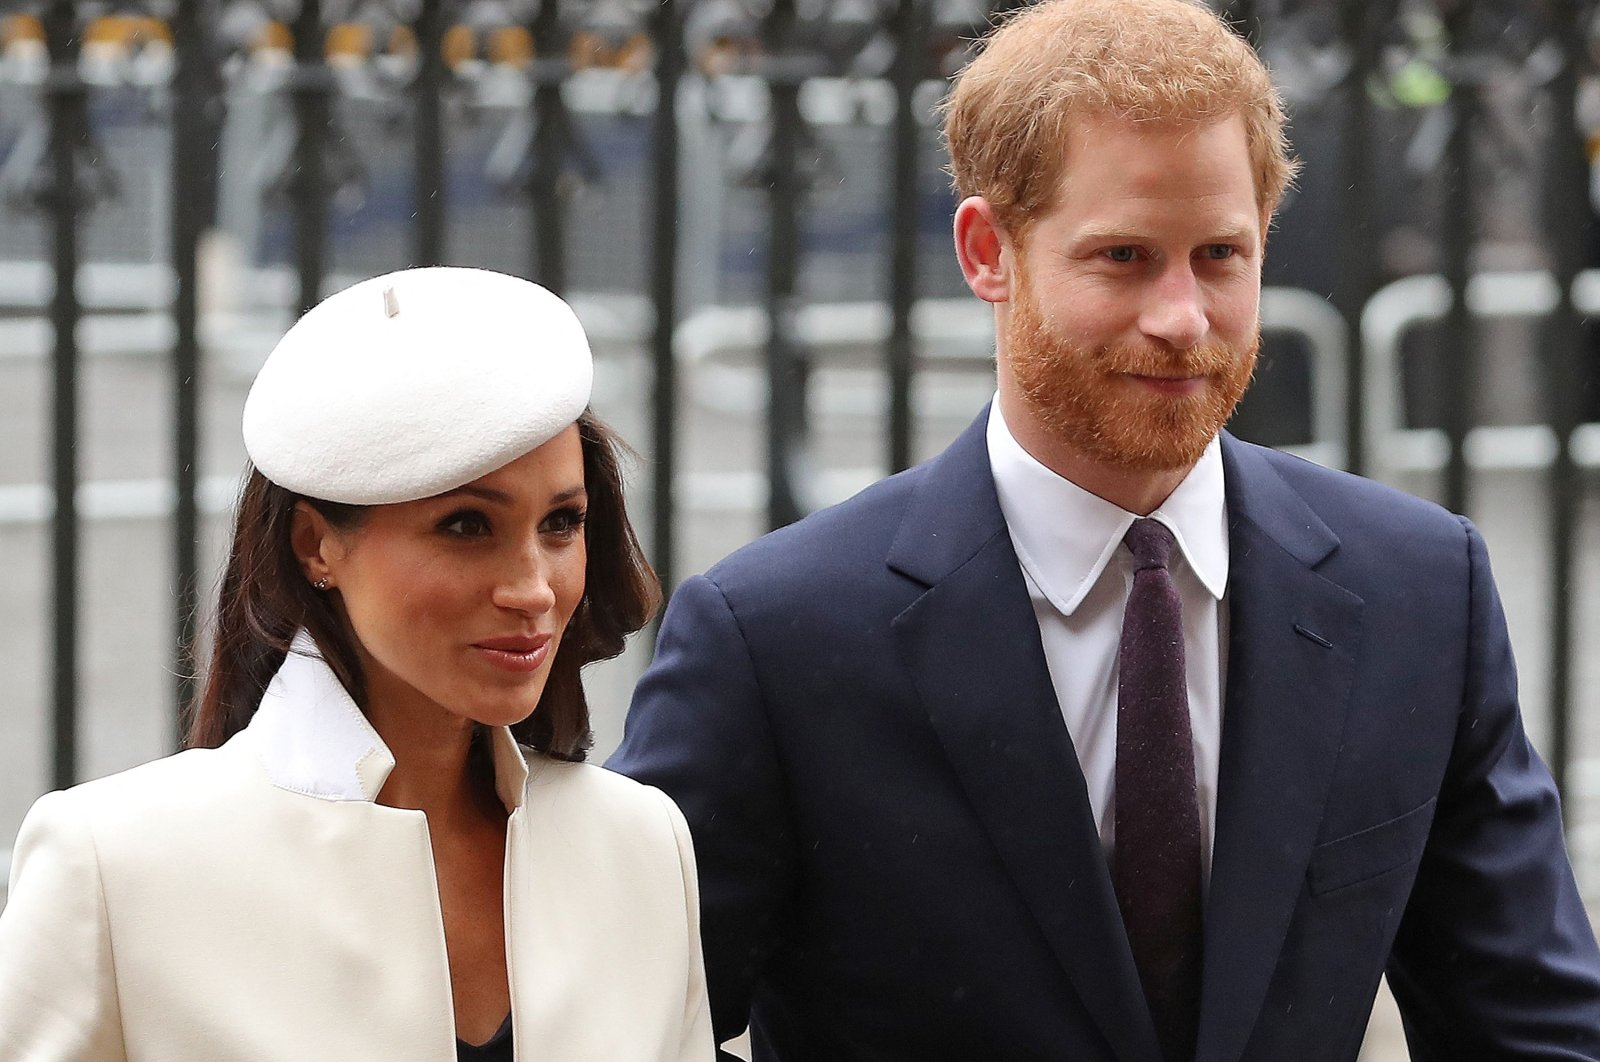 In this file photo, Britain's Prince Harry (R) and Meghan Markle attend a Commonwealth Day Service at Westminster Abbey in central London, on March 12, 2018. (AFP Photo)